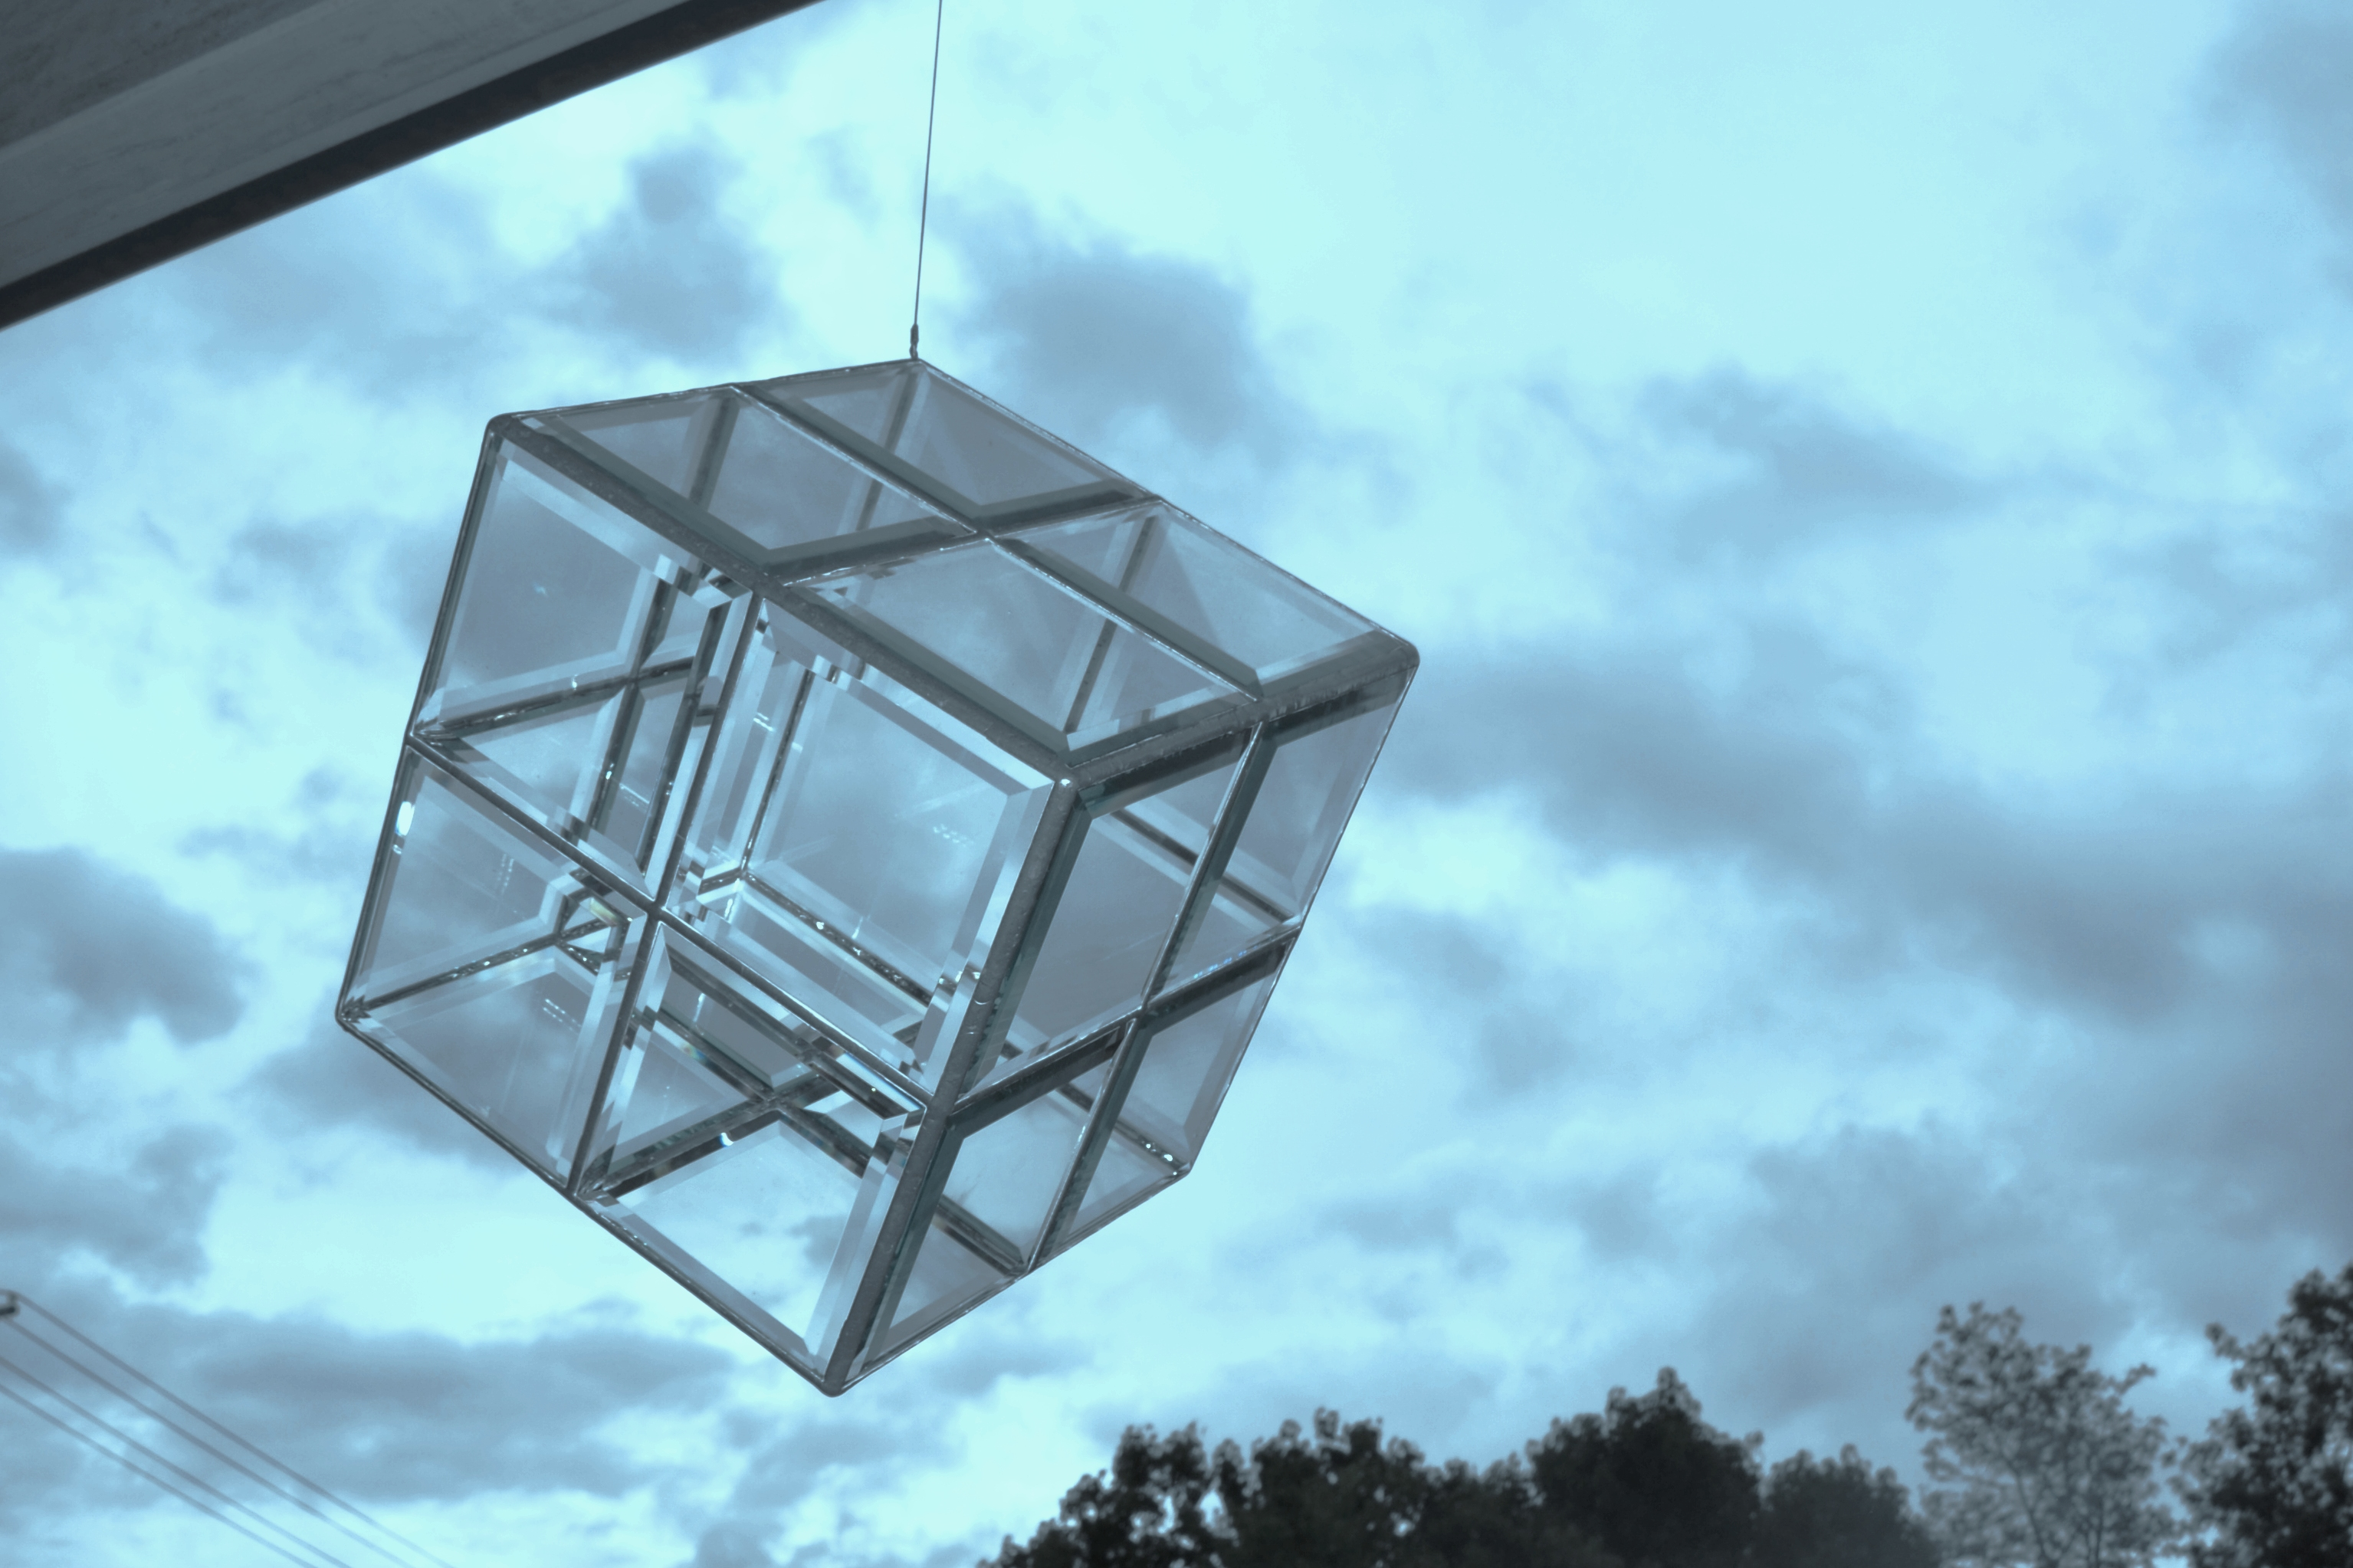 bangalow flying glass sculpture